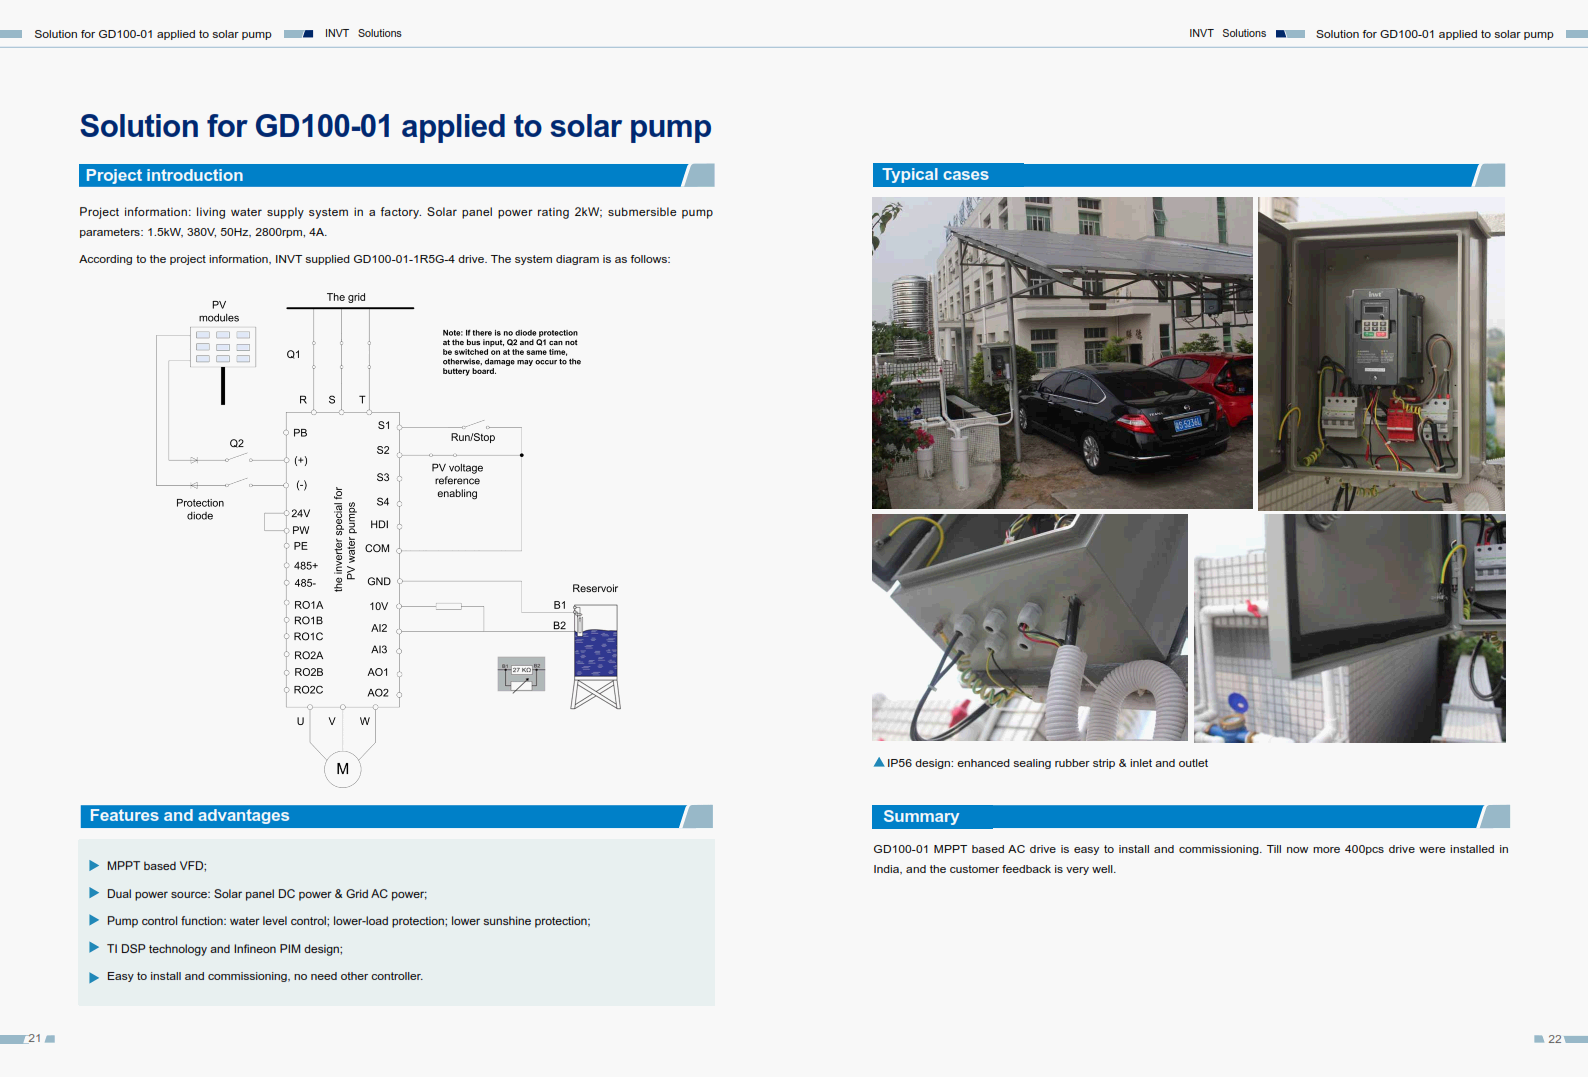 Solution for GD100-01 applied to solar pump